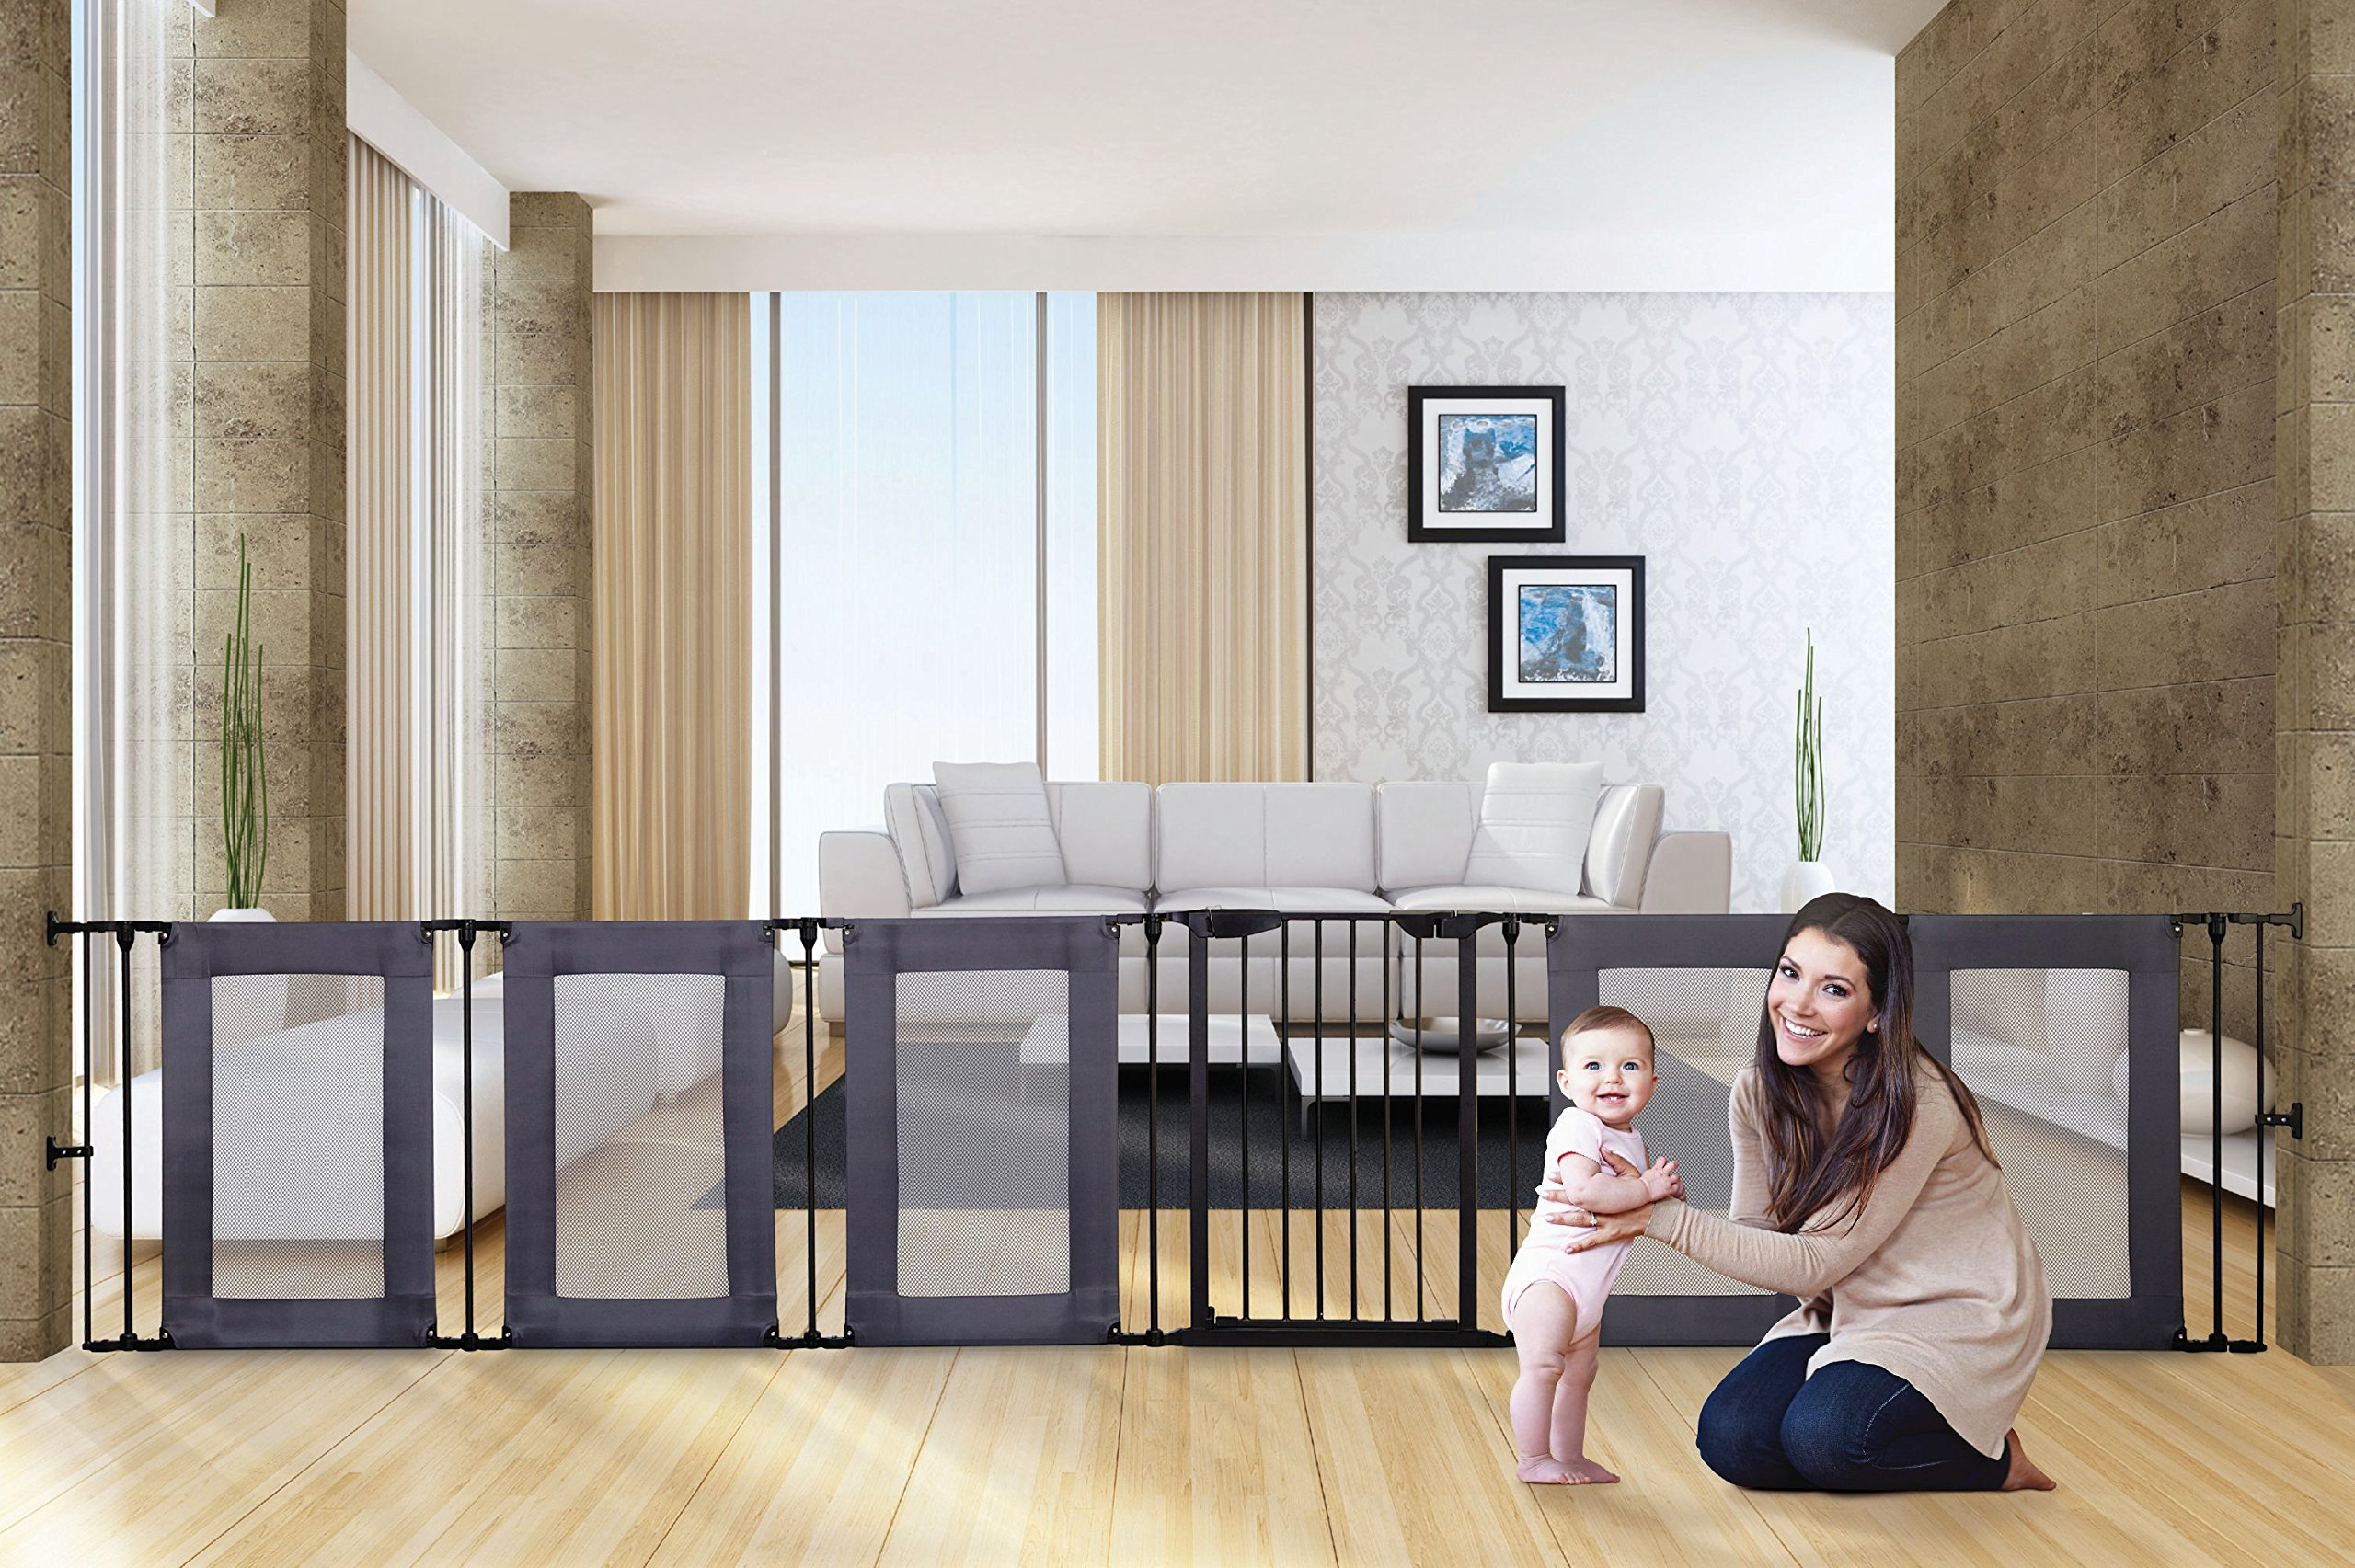 Dreambaby Brooklyn 3-in-1 Converta Dreambaby 6 modular panels including covenient walk-through gate Arrange panels to your specific layout Can be used as either a play-pen or extra-wide barrier gate 5